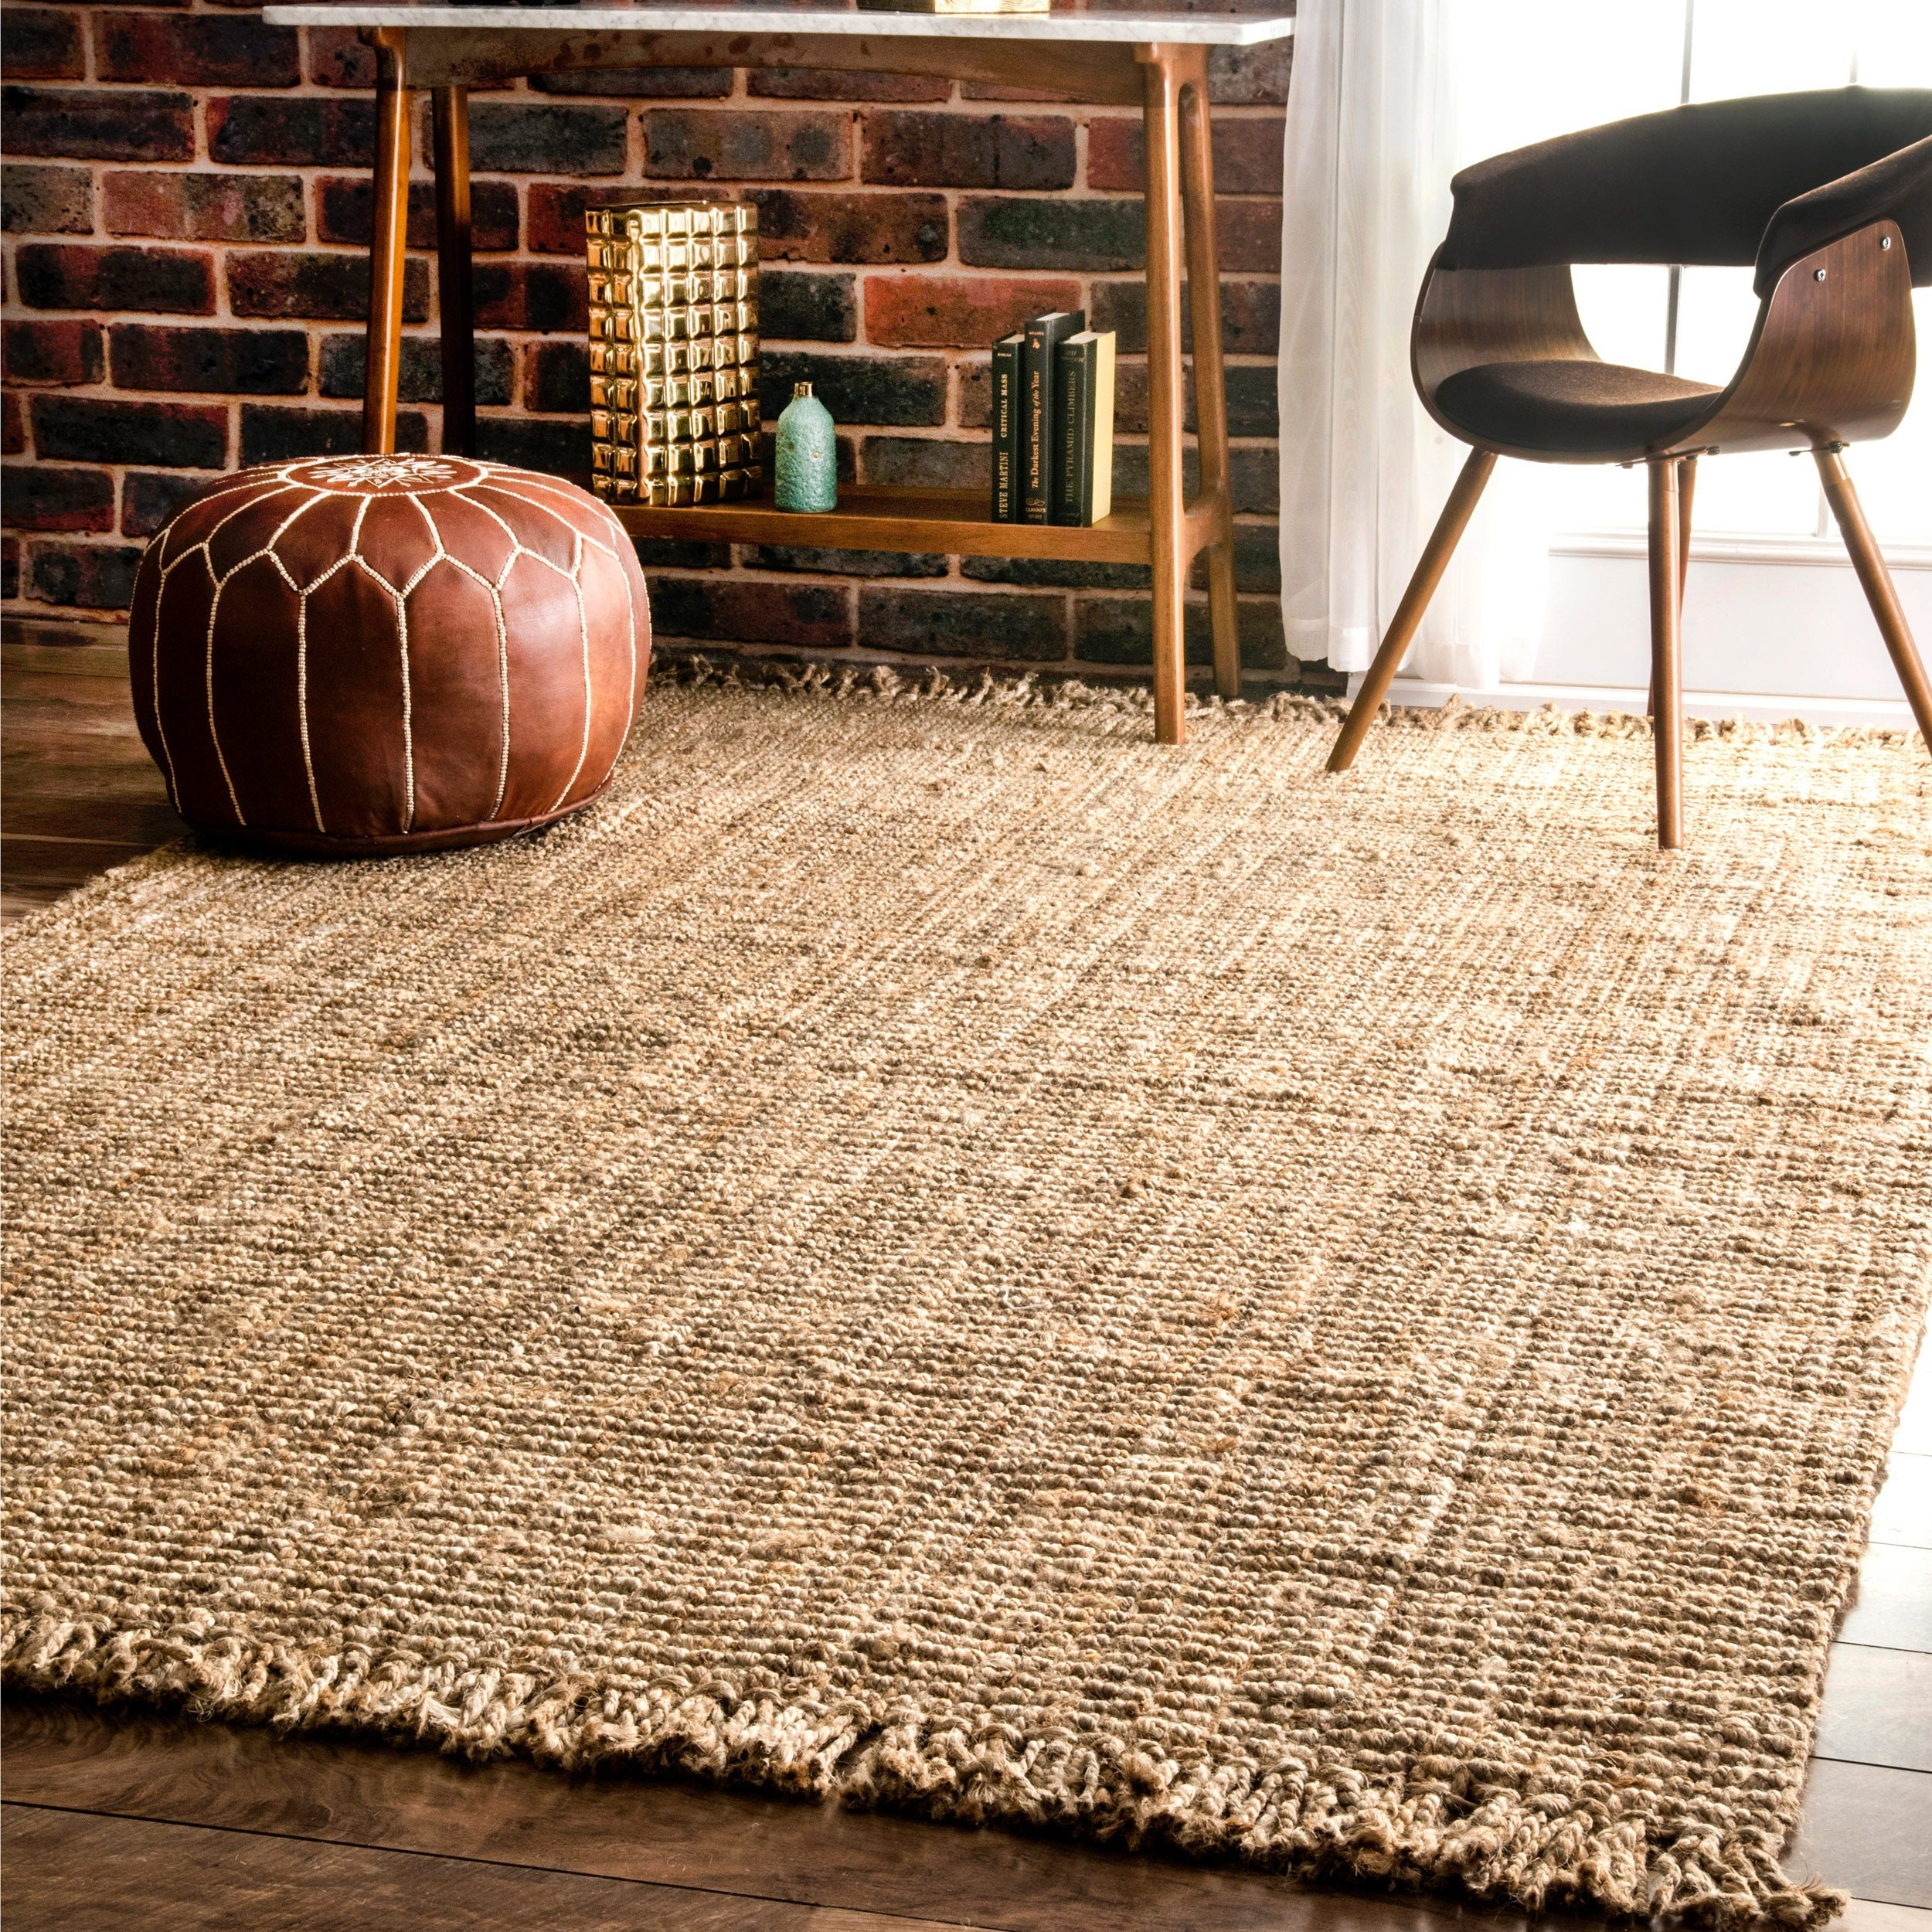 Shop Nuloom Handmade Braided Natural Jute Reversible Area